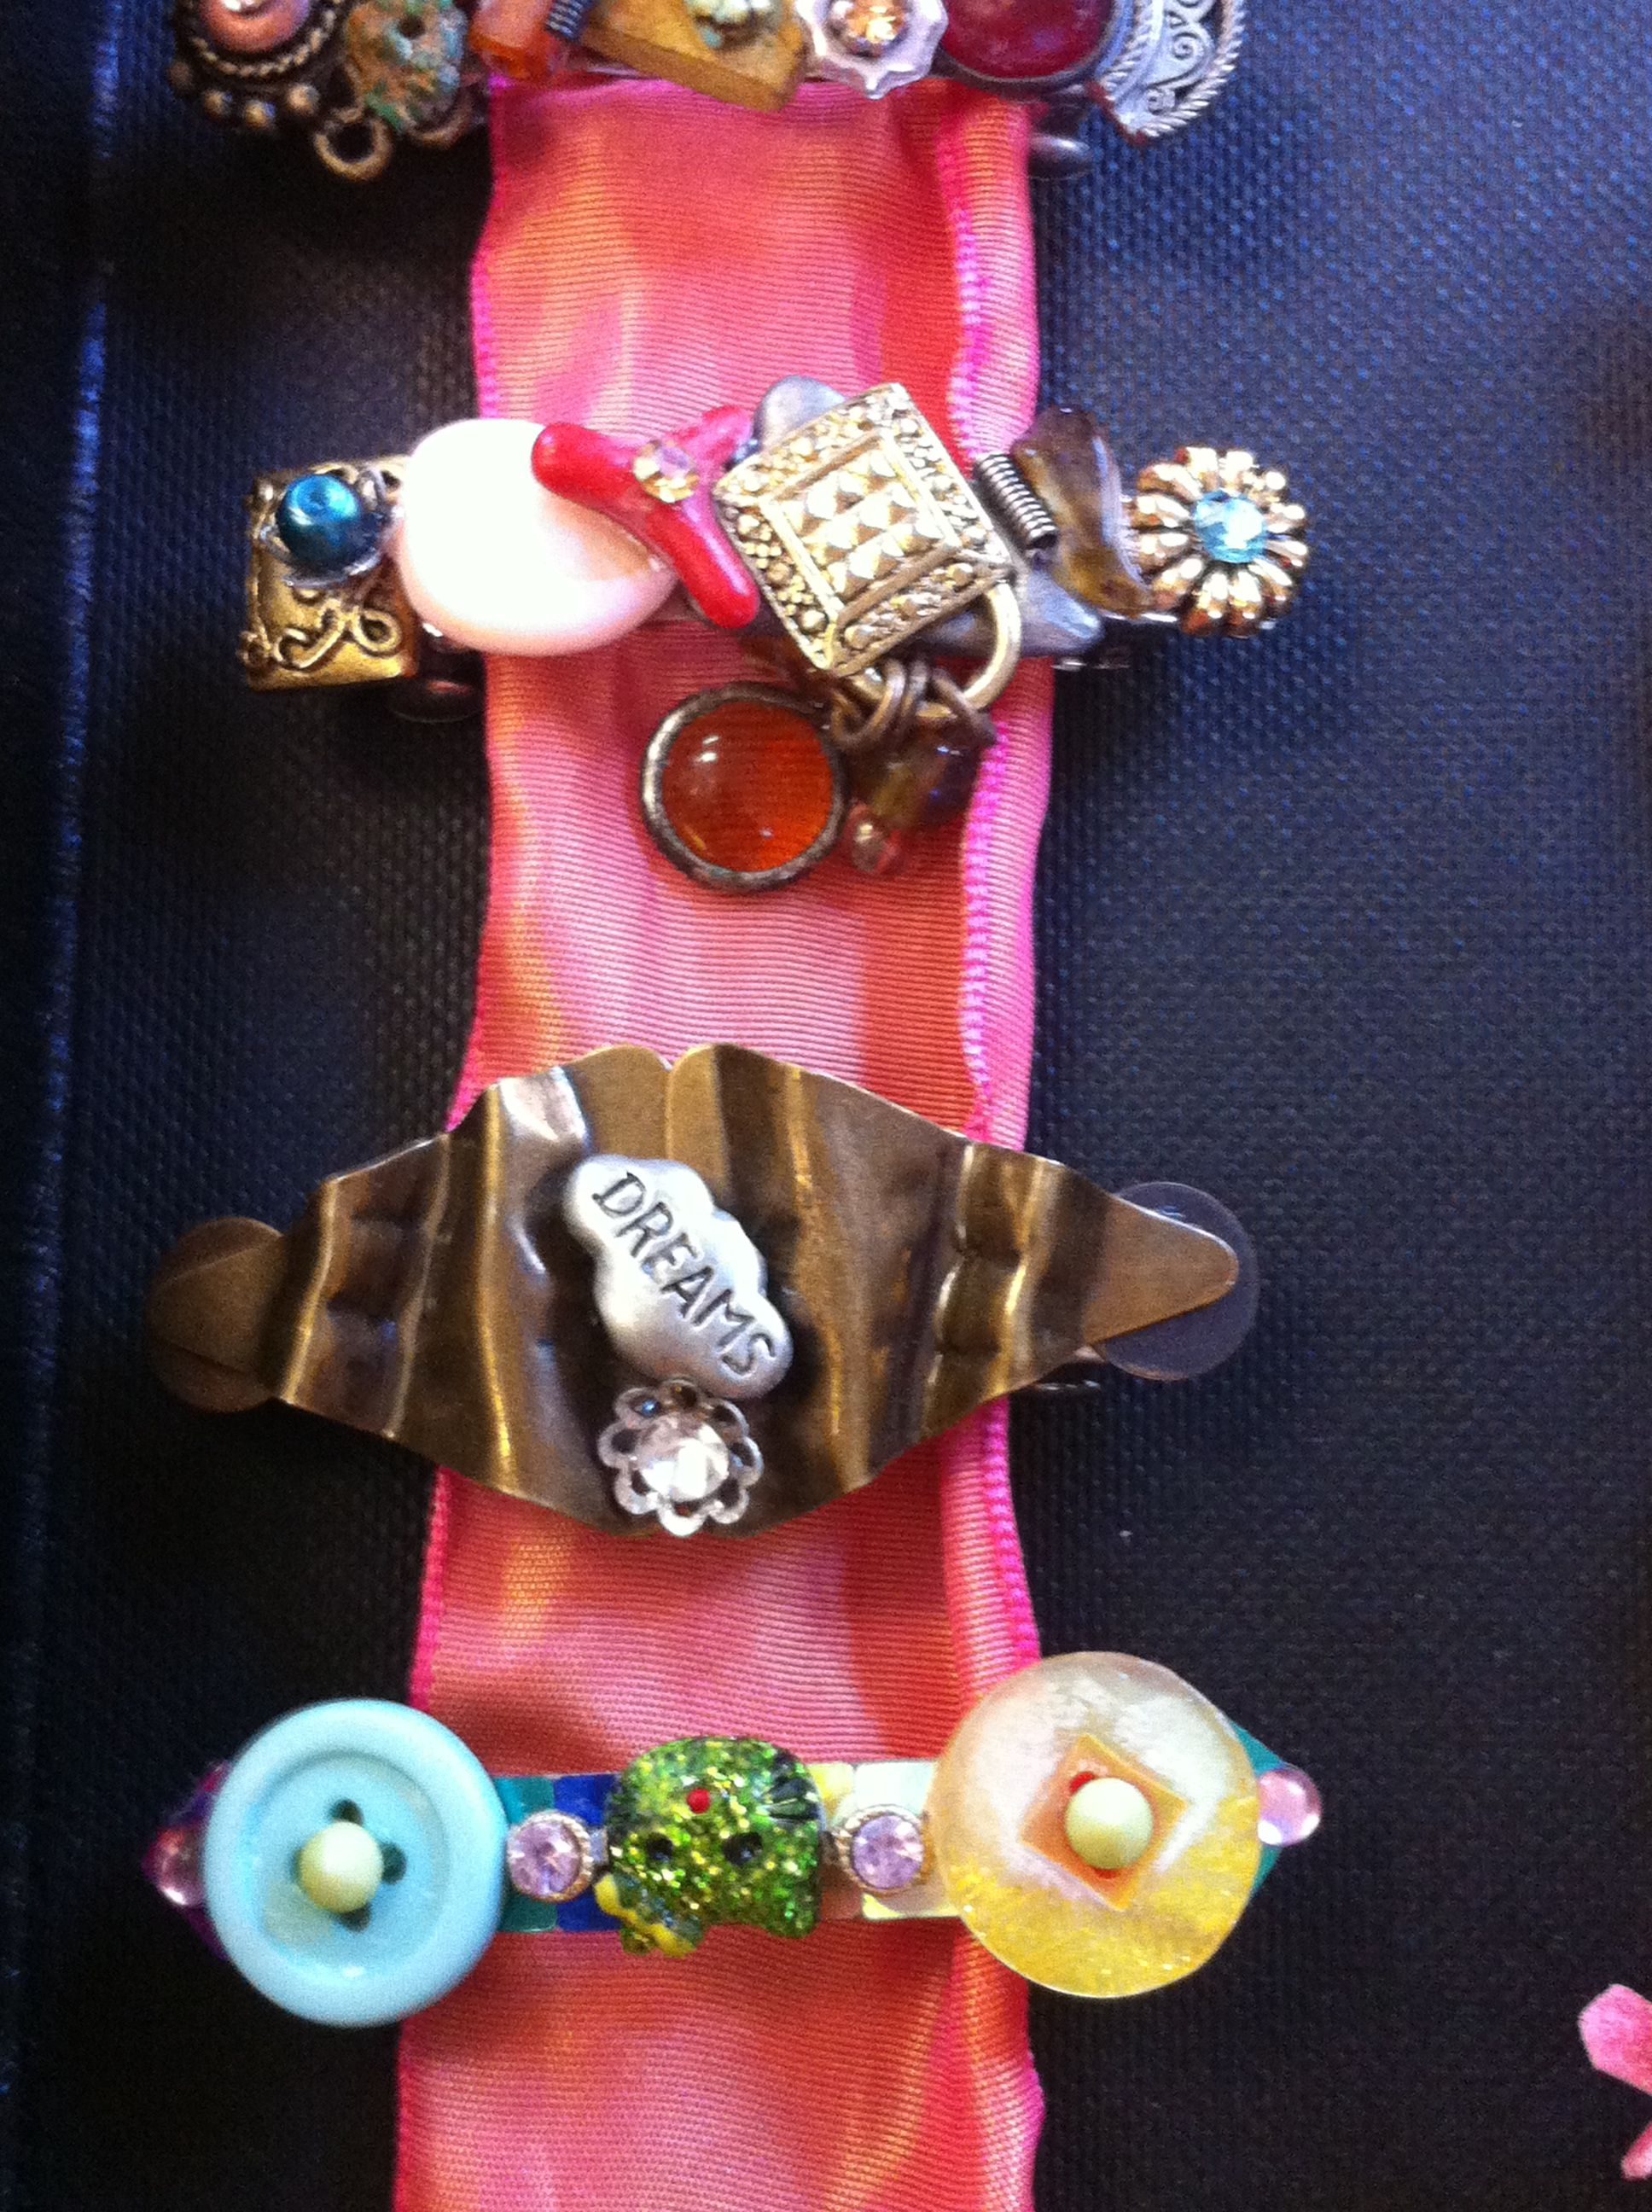 Mini Barrettes Too!!! Handmade hair barrettes--a truly one of a kind gift. Stop by 124A Grand Ave Mars PA 16046 Wednesday-Saturday 12-5pm to get your own!!!